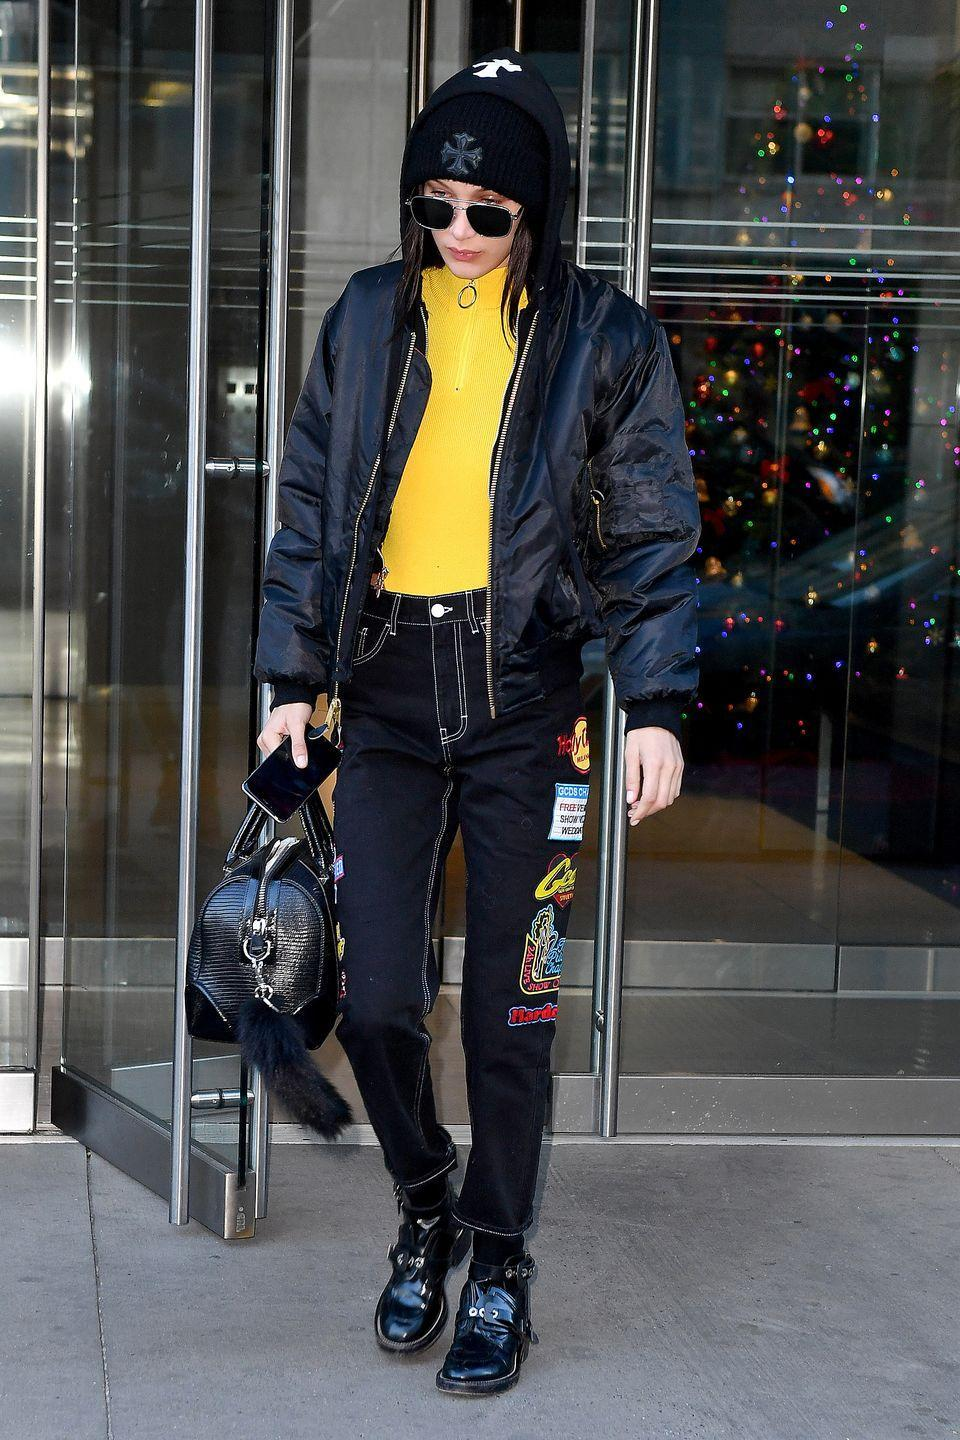 <p>In a black bomber jacket, hoodie, yellow zip-up top, beanie, sunglasses, embroidered dark jeans, patent buckled boots and a leather satchel while out in NYC.</p>